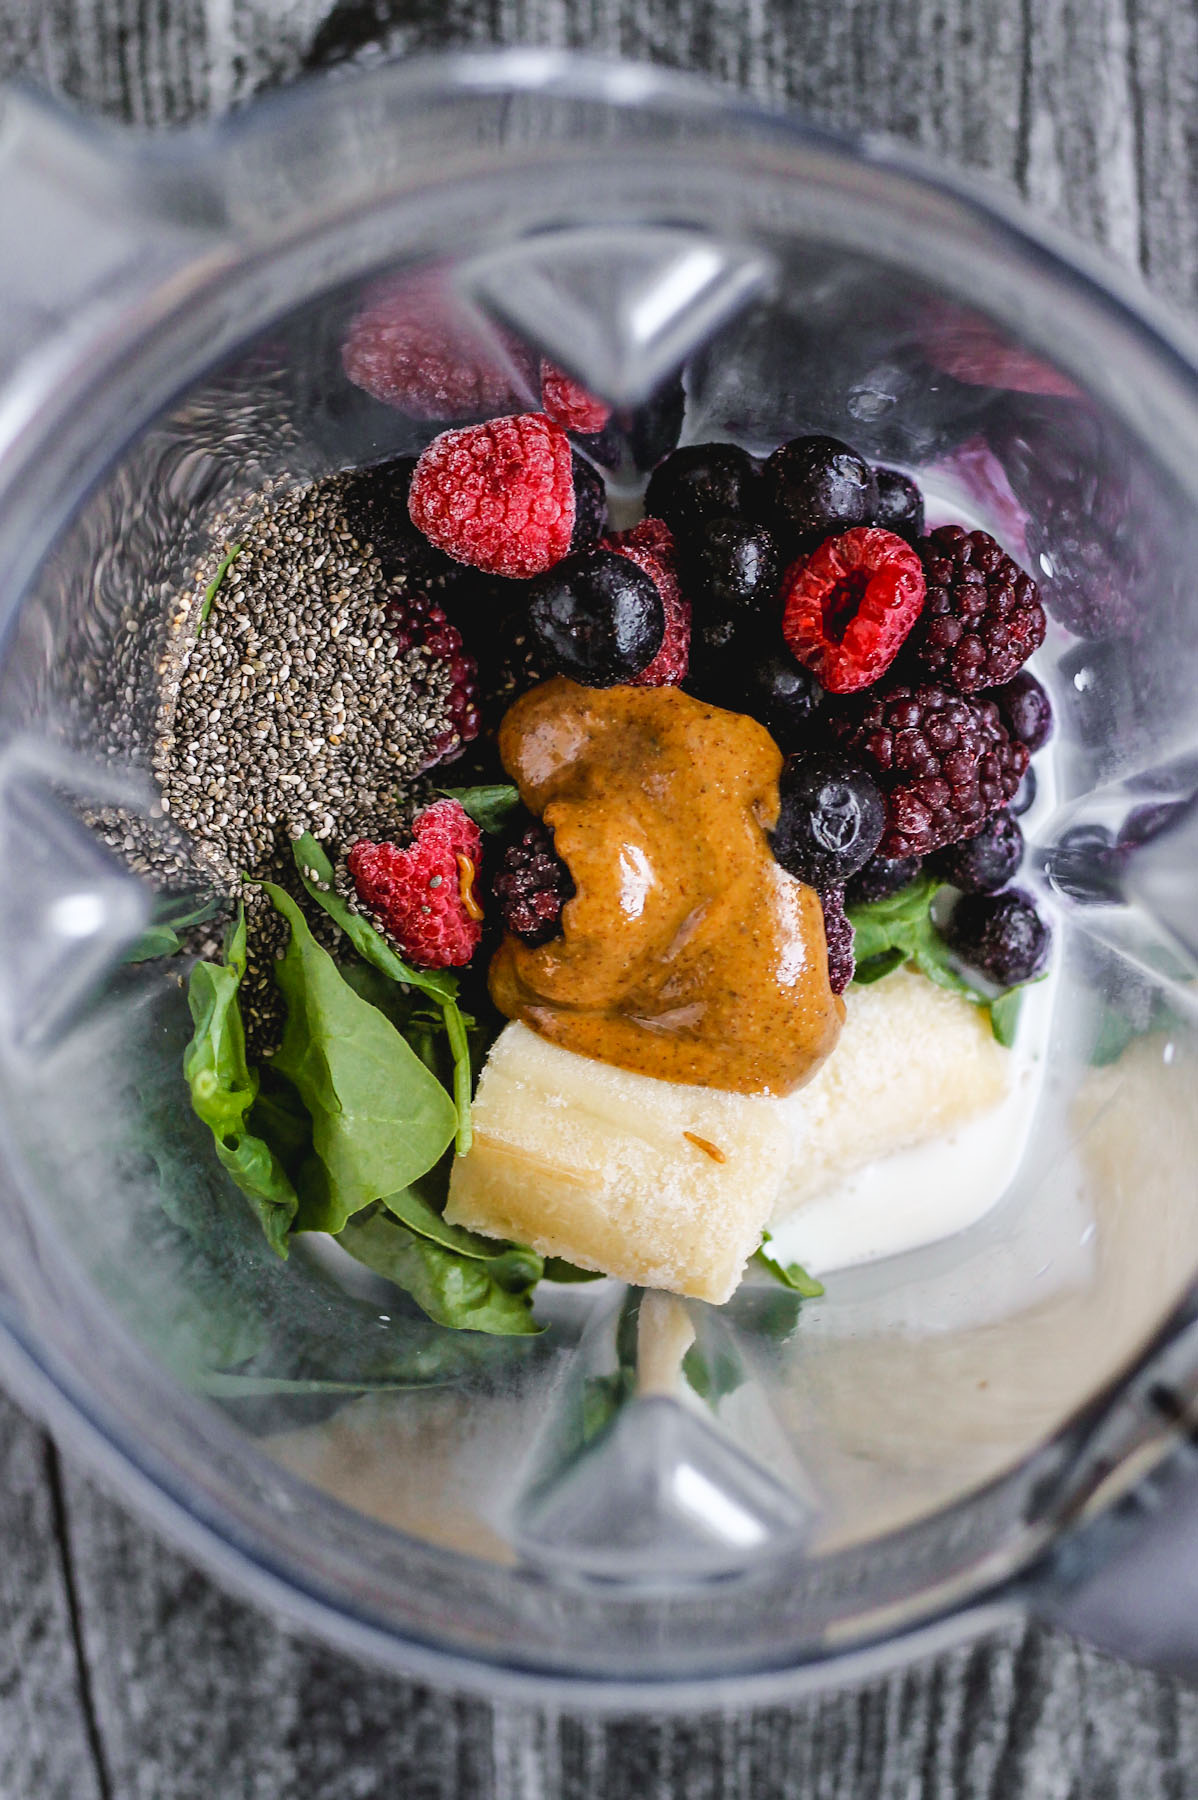 chia seeds, spinach, banana, almond butter, frozen mixed berries, and almond milk in blender before being blended